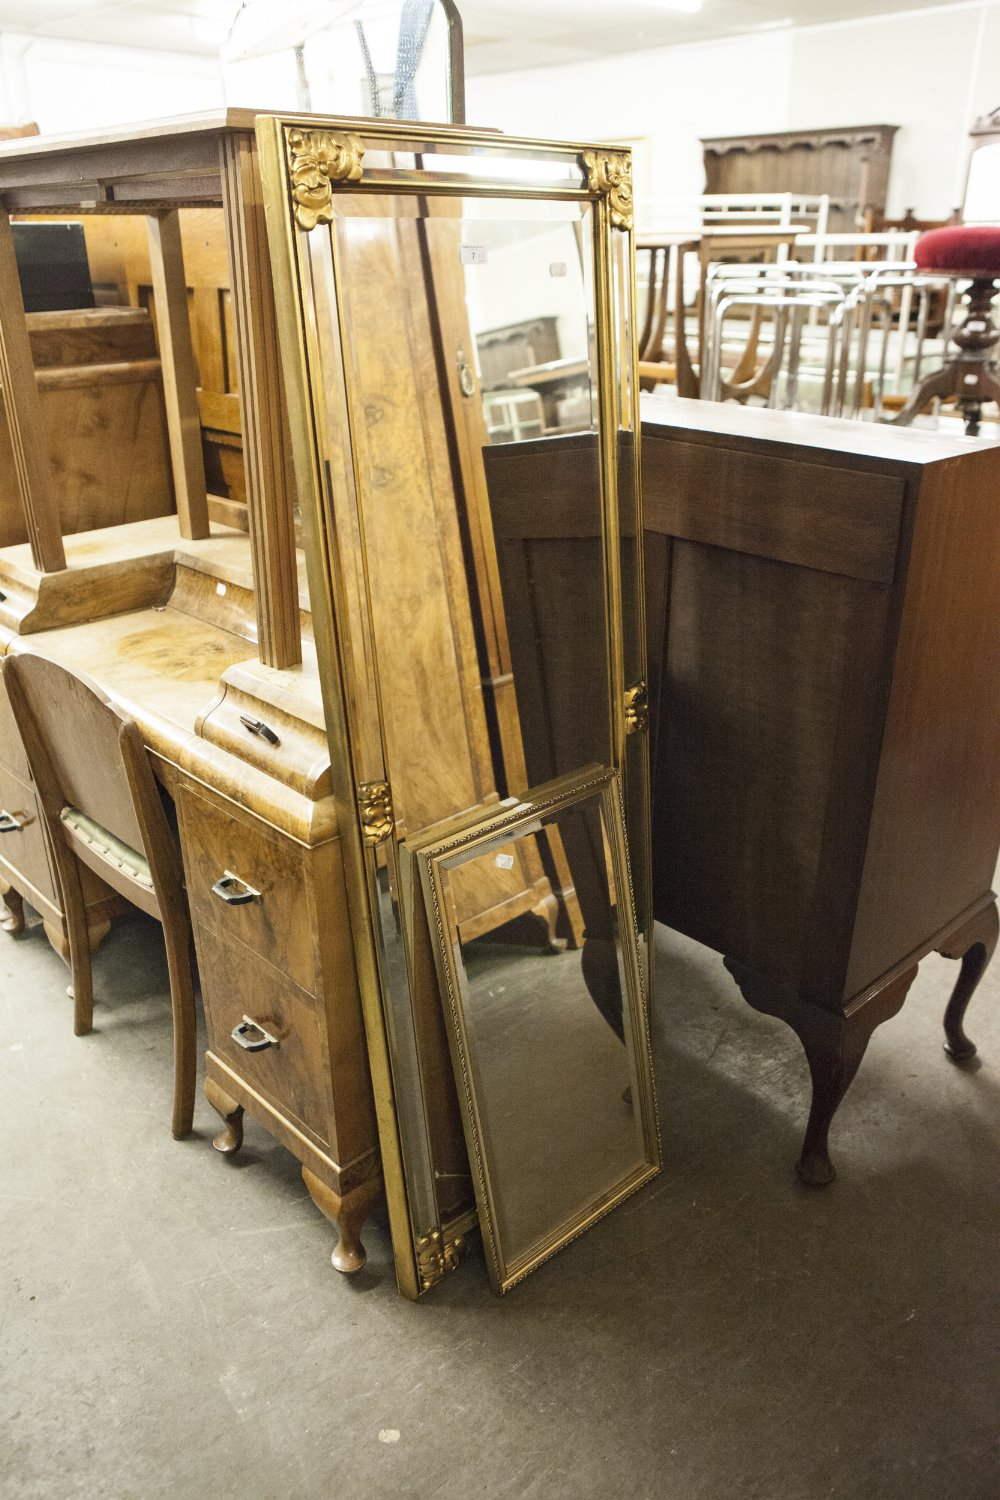 "Lot 7 - A GILT FRAMED ROBING MIRROR AND A GILT FRAMED OBLONG WALL MIRROR, 25"" X 13"" OVERALL"